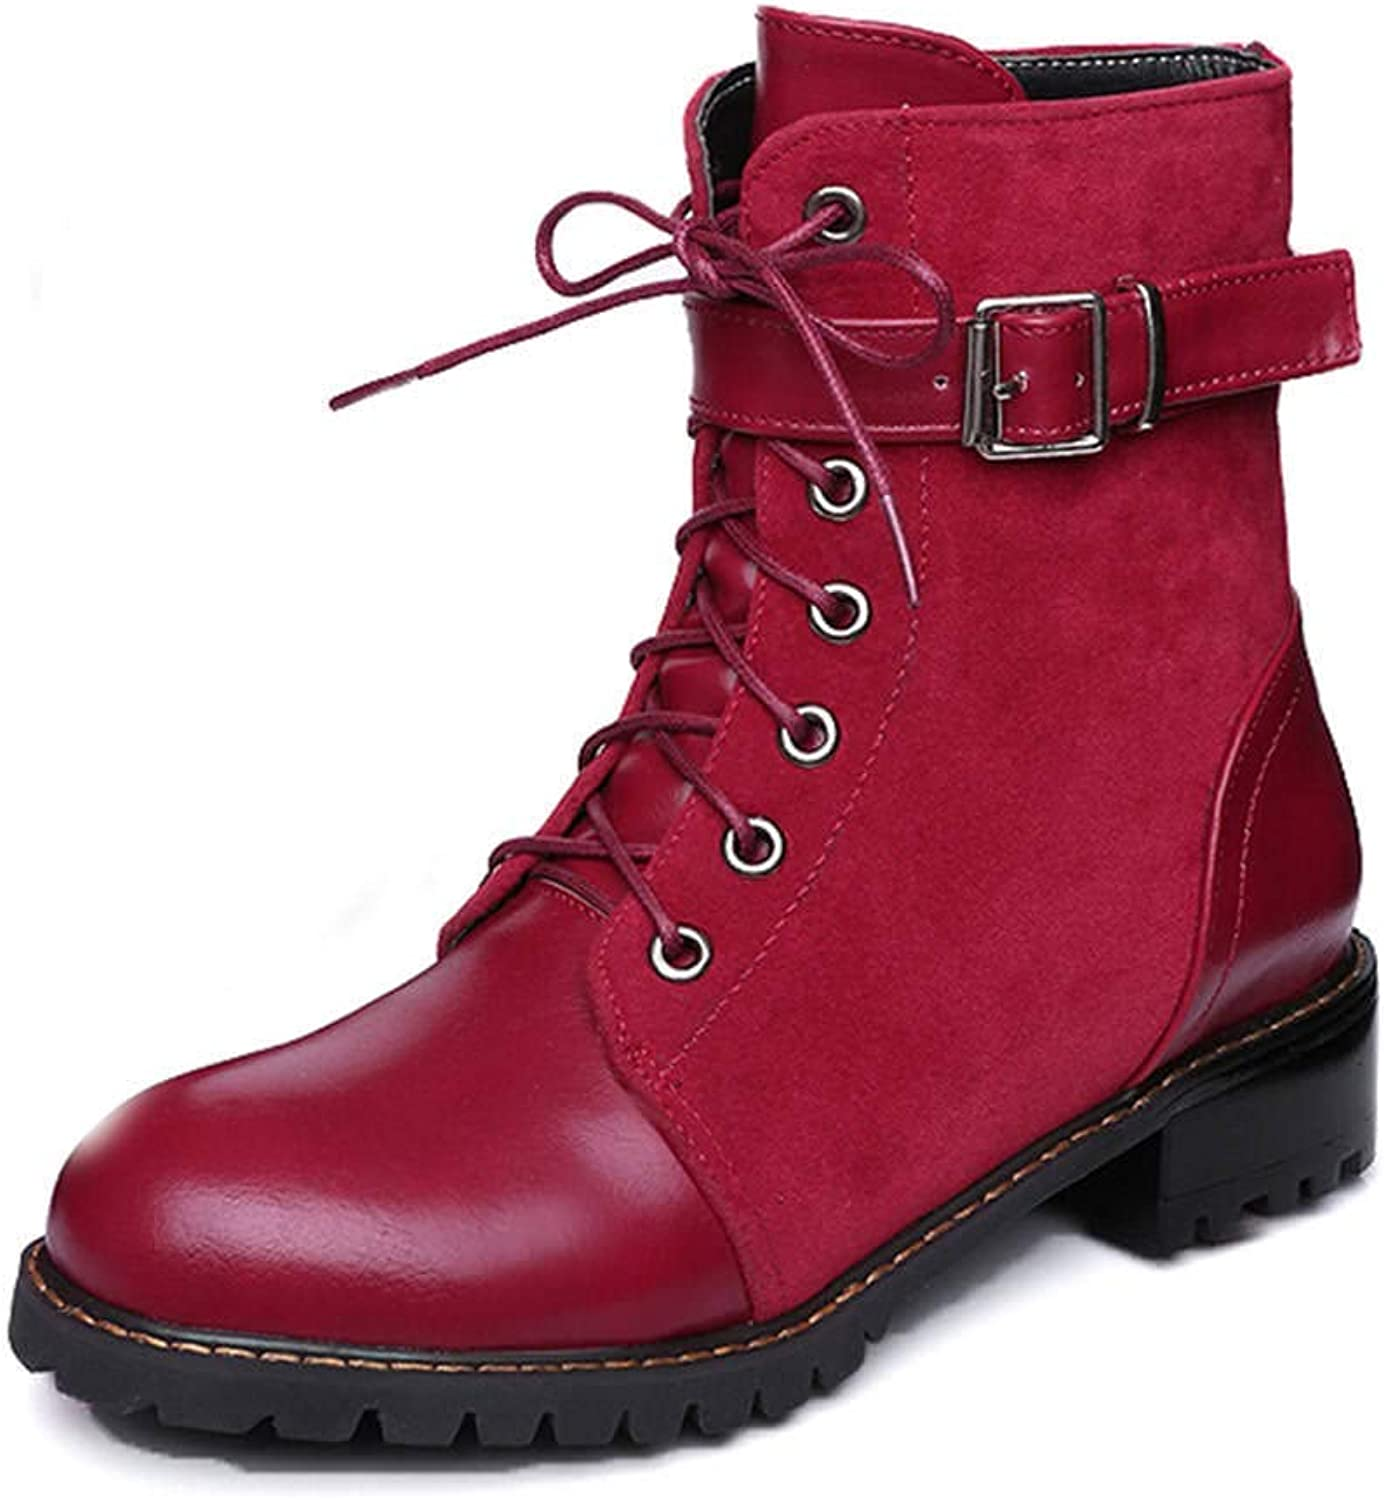 Women's Lace-up Fashion Solid color Round Toe Low Heel Boots(Red-5 M US)